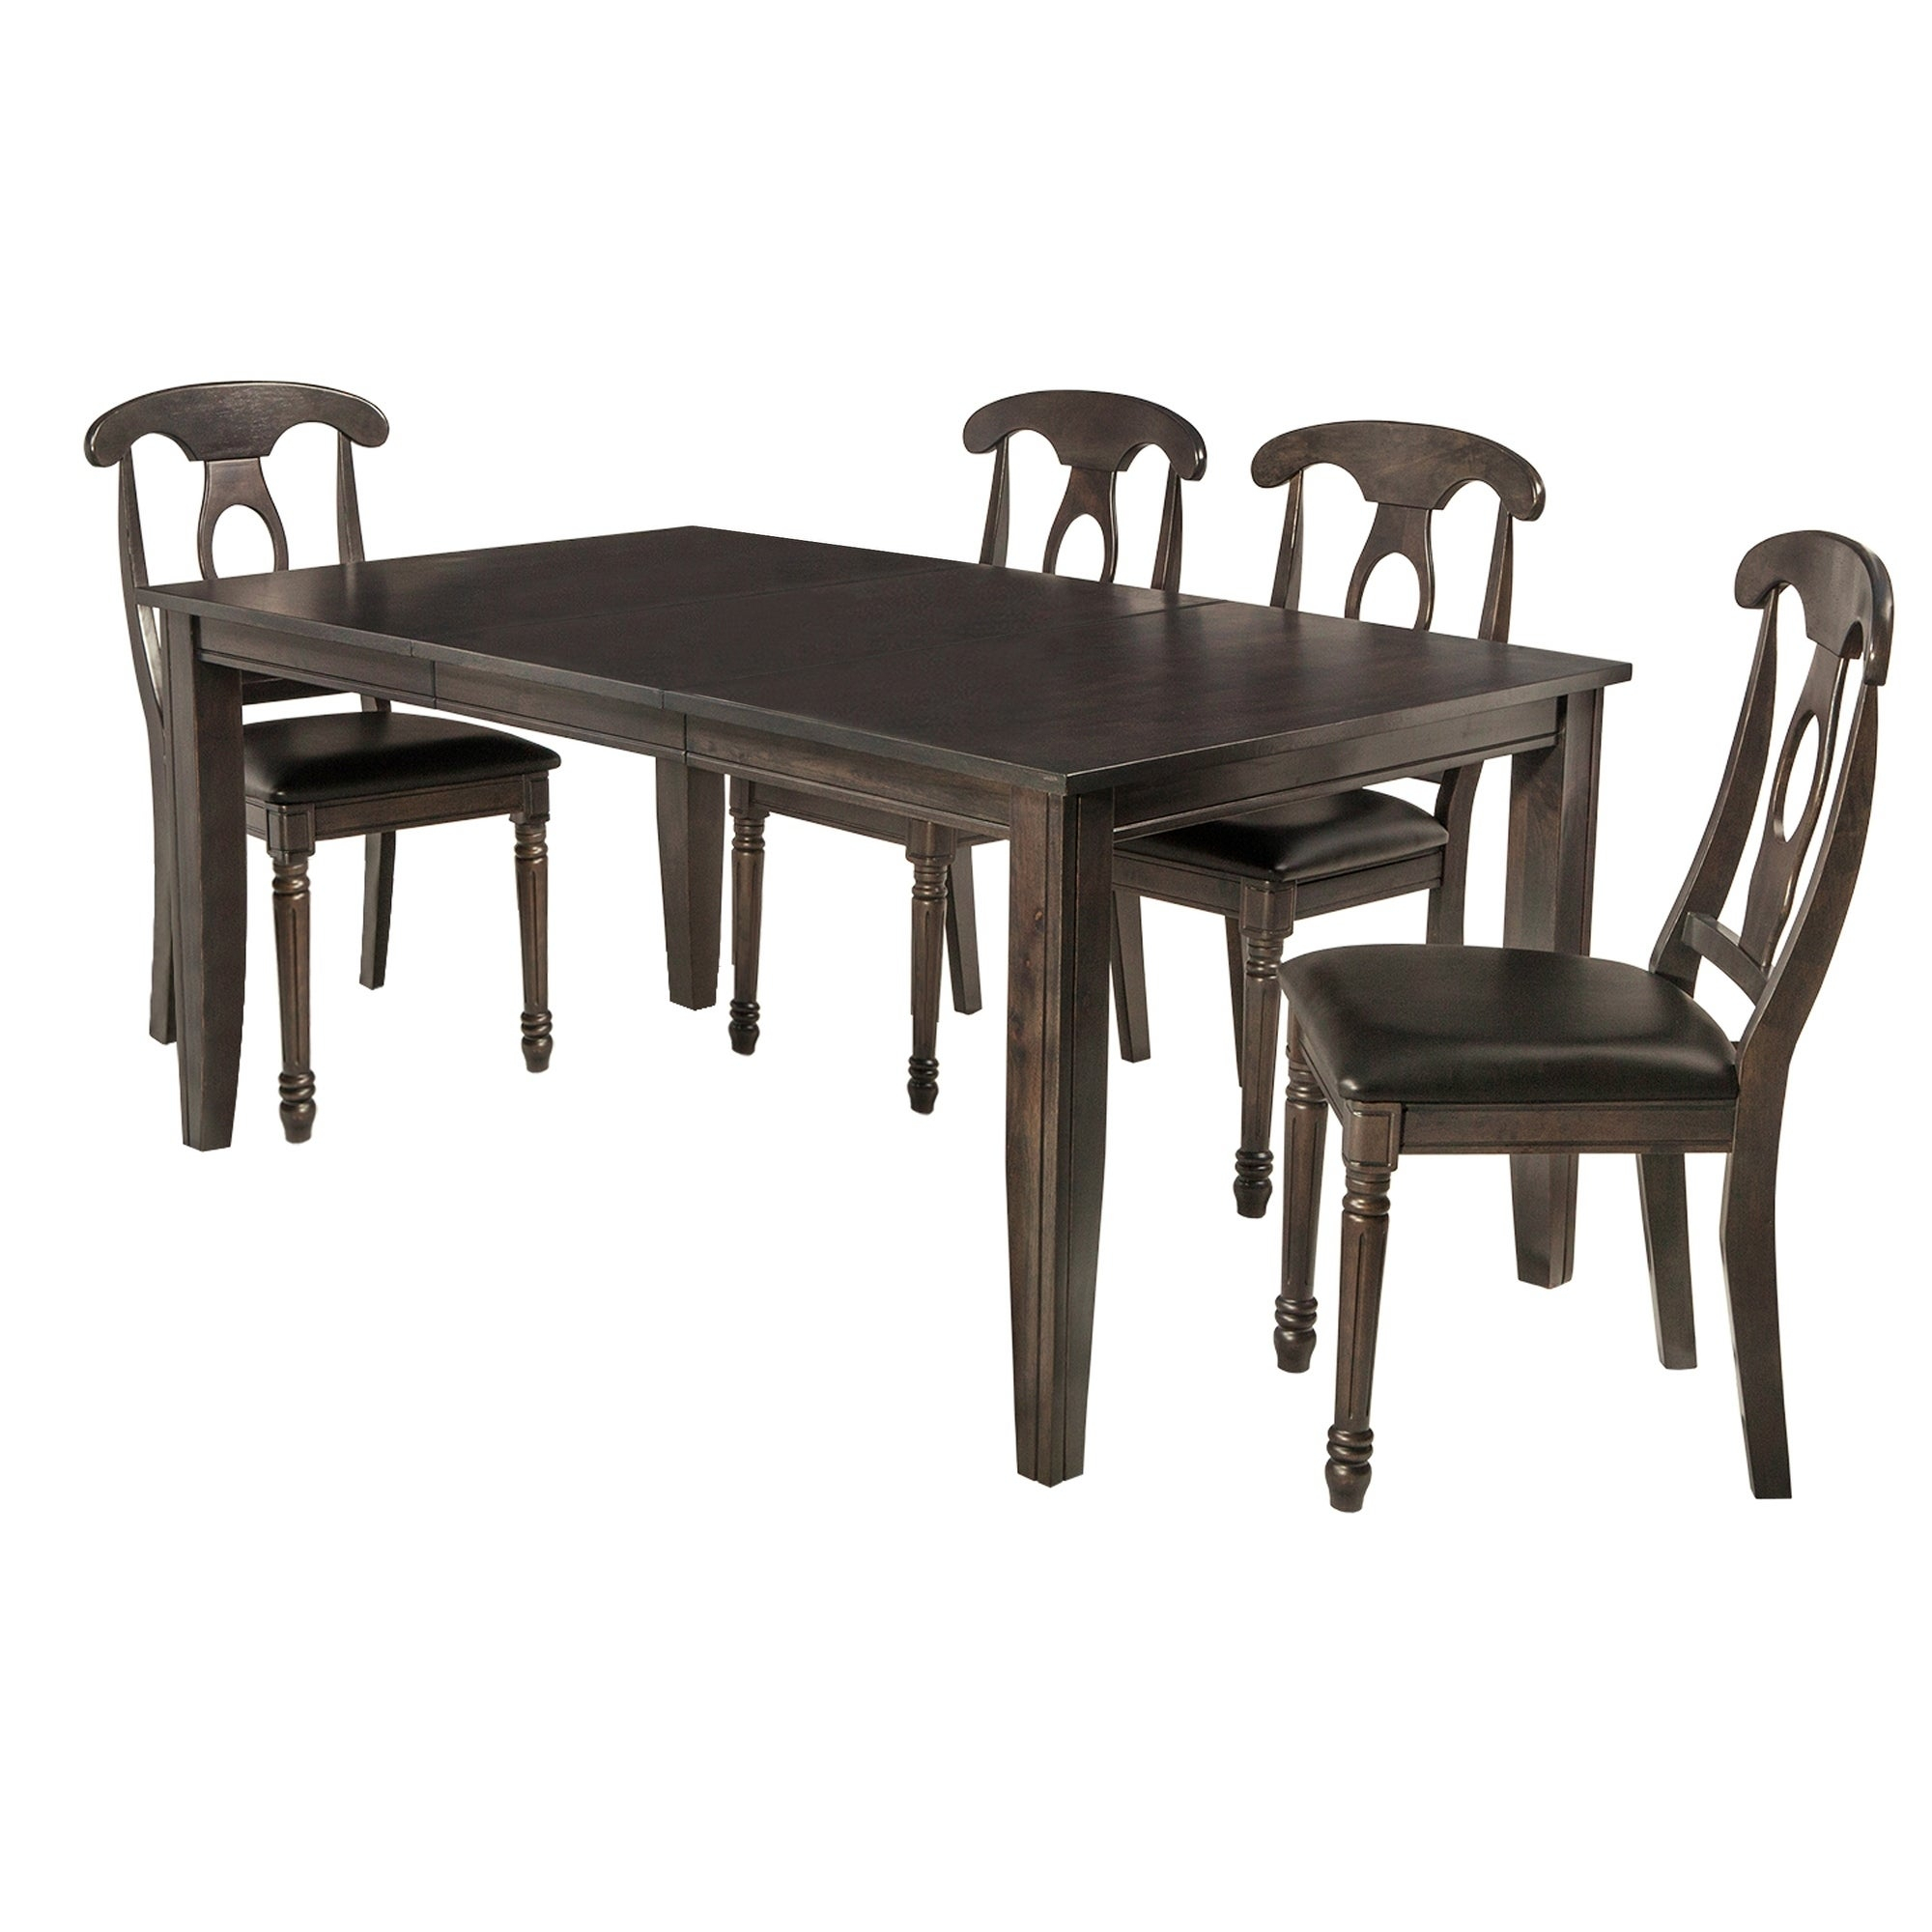 "5 Piece Solid Wood Dining Set ""aden"", Modern Kitchen Table Set, Dark Gray Inside Most Recently Released Adan 5 Piece Solid Wood Dining Sets (Set Of 5) (Image 1 of 20)"